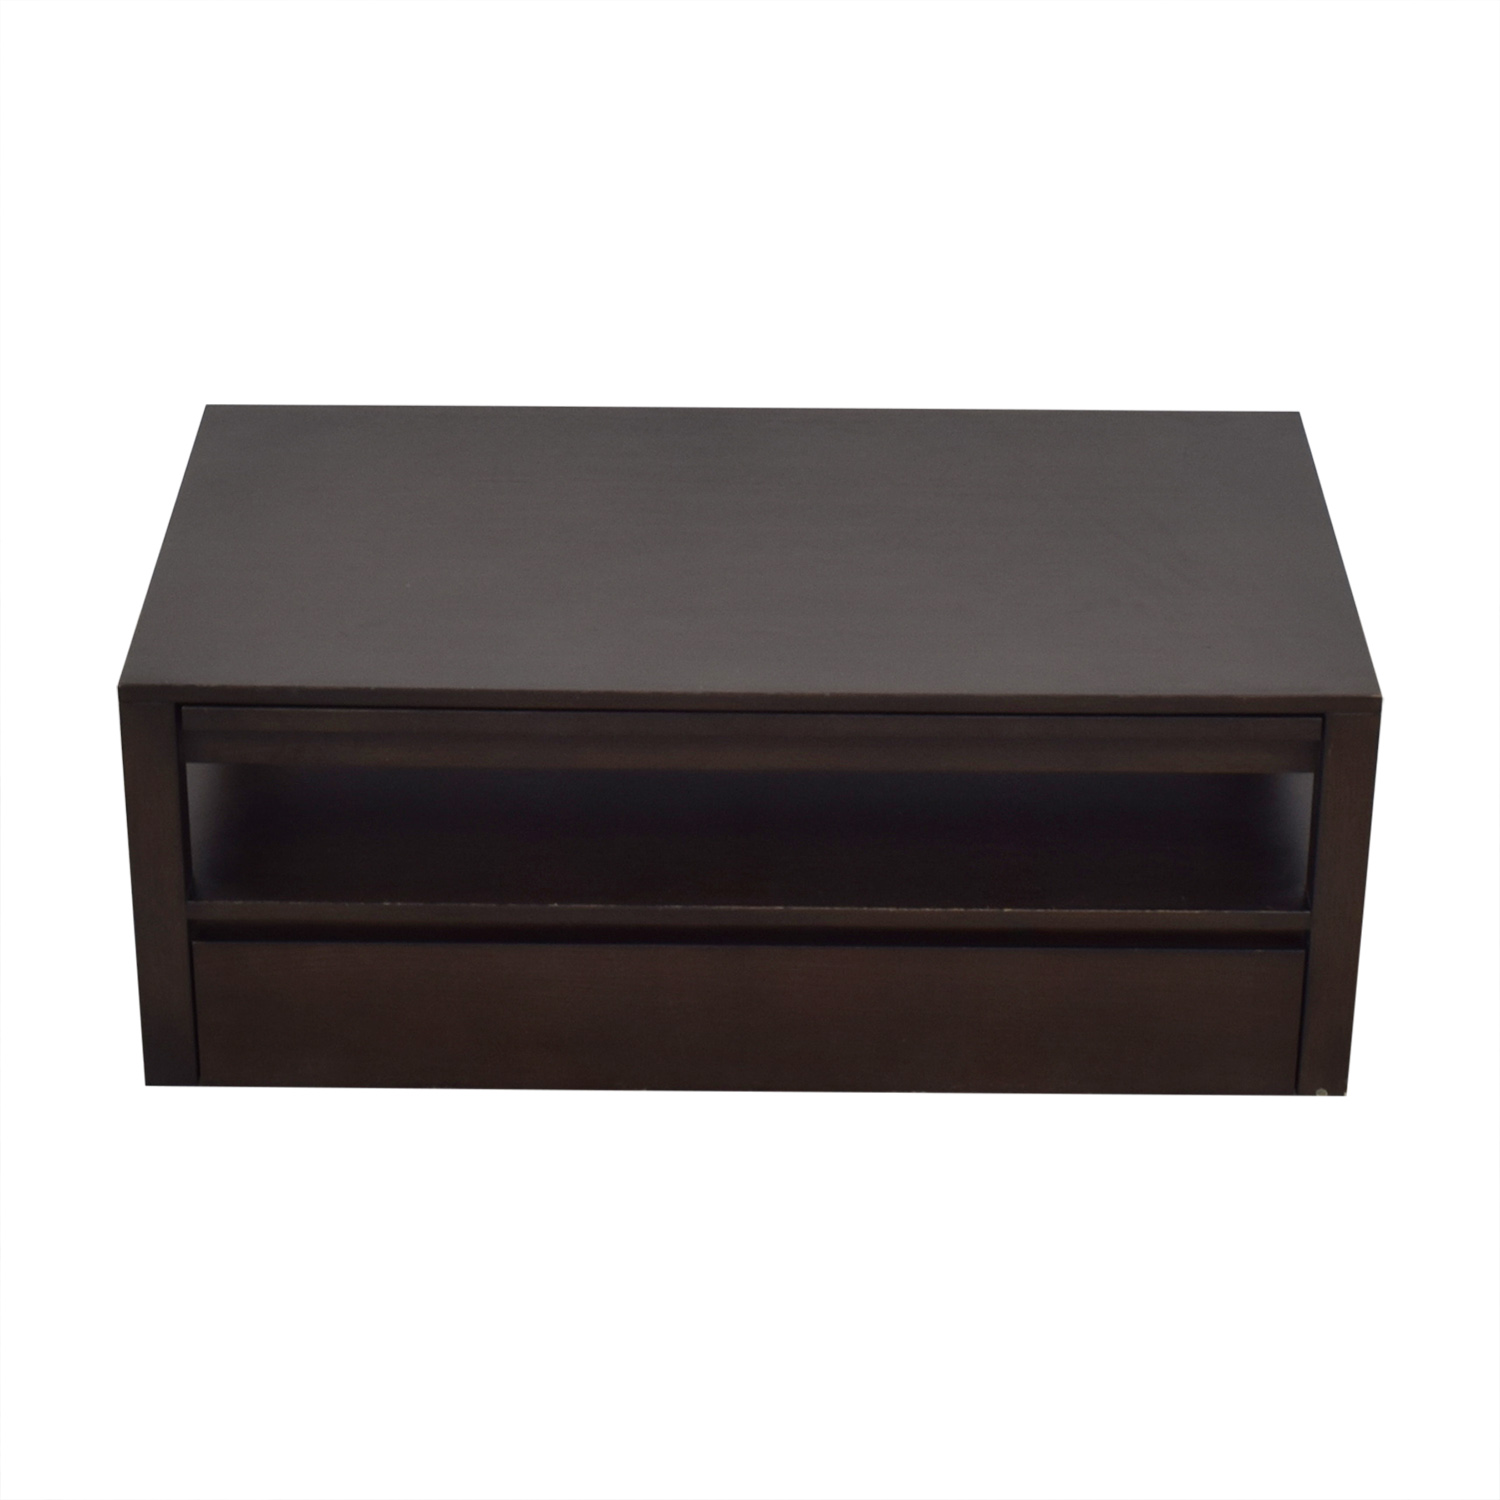 Crate & Barrel Crate & Barrel Expandable Coffee Table dimensions